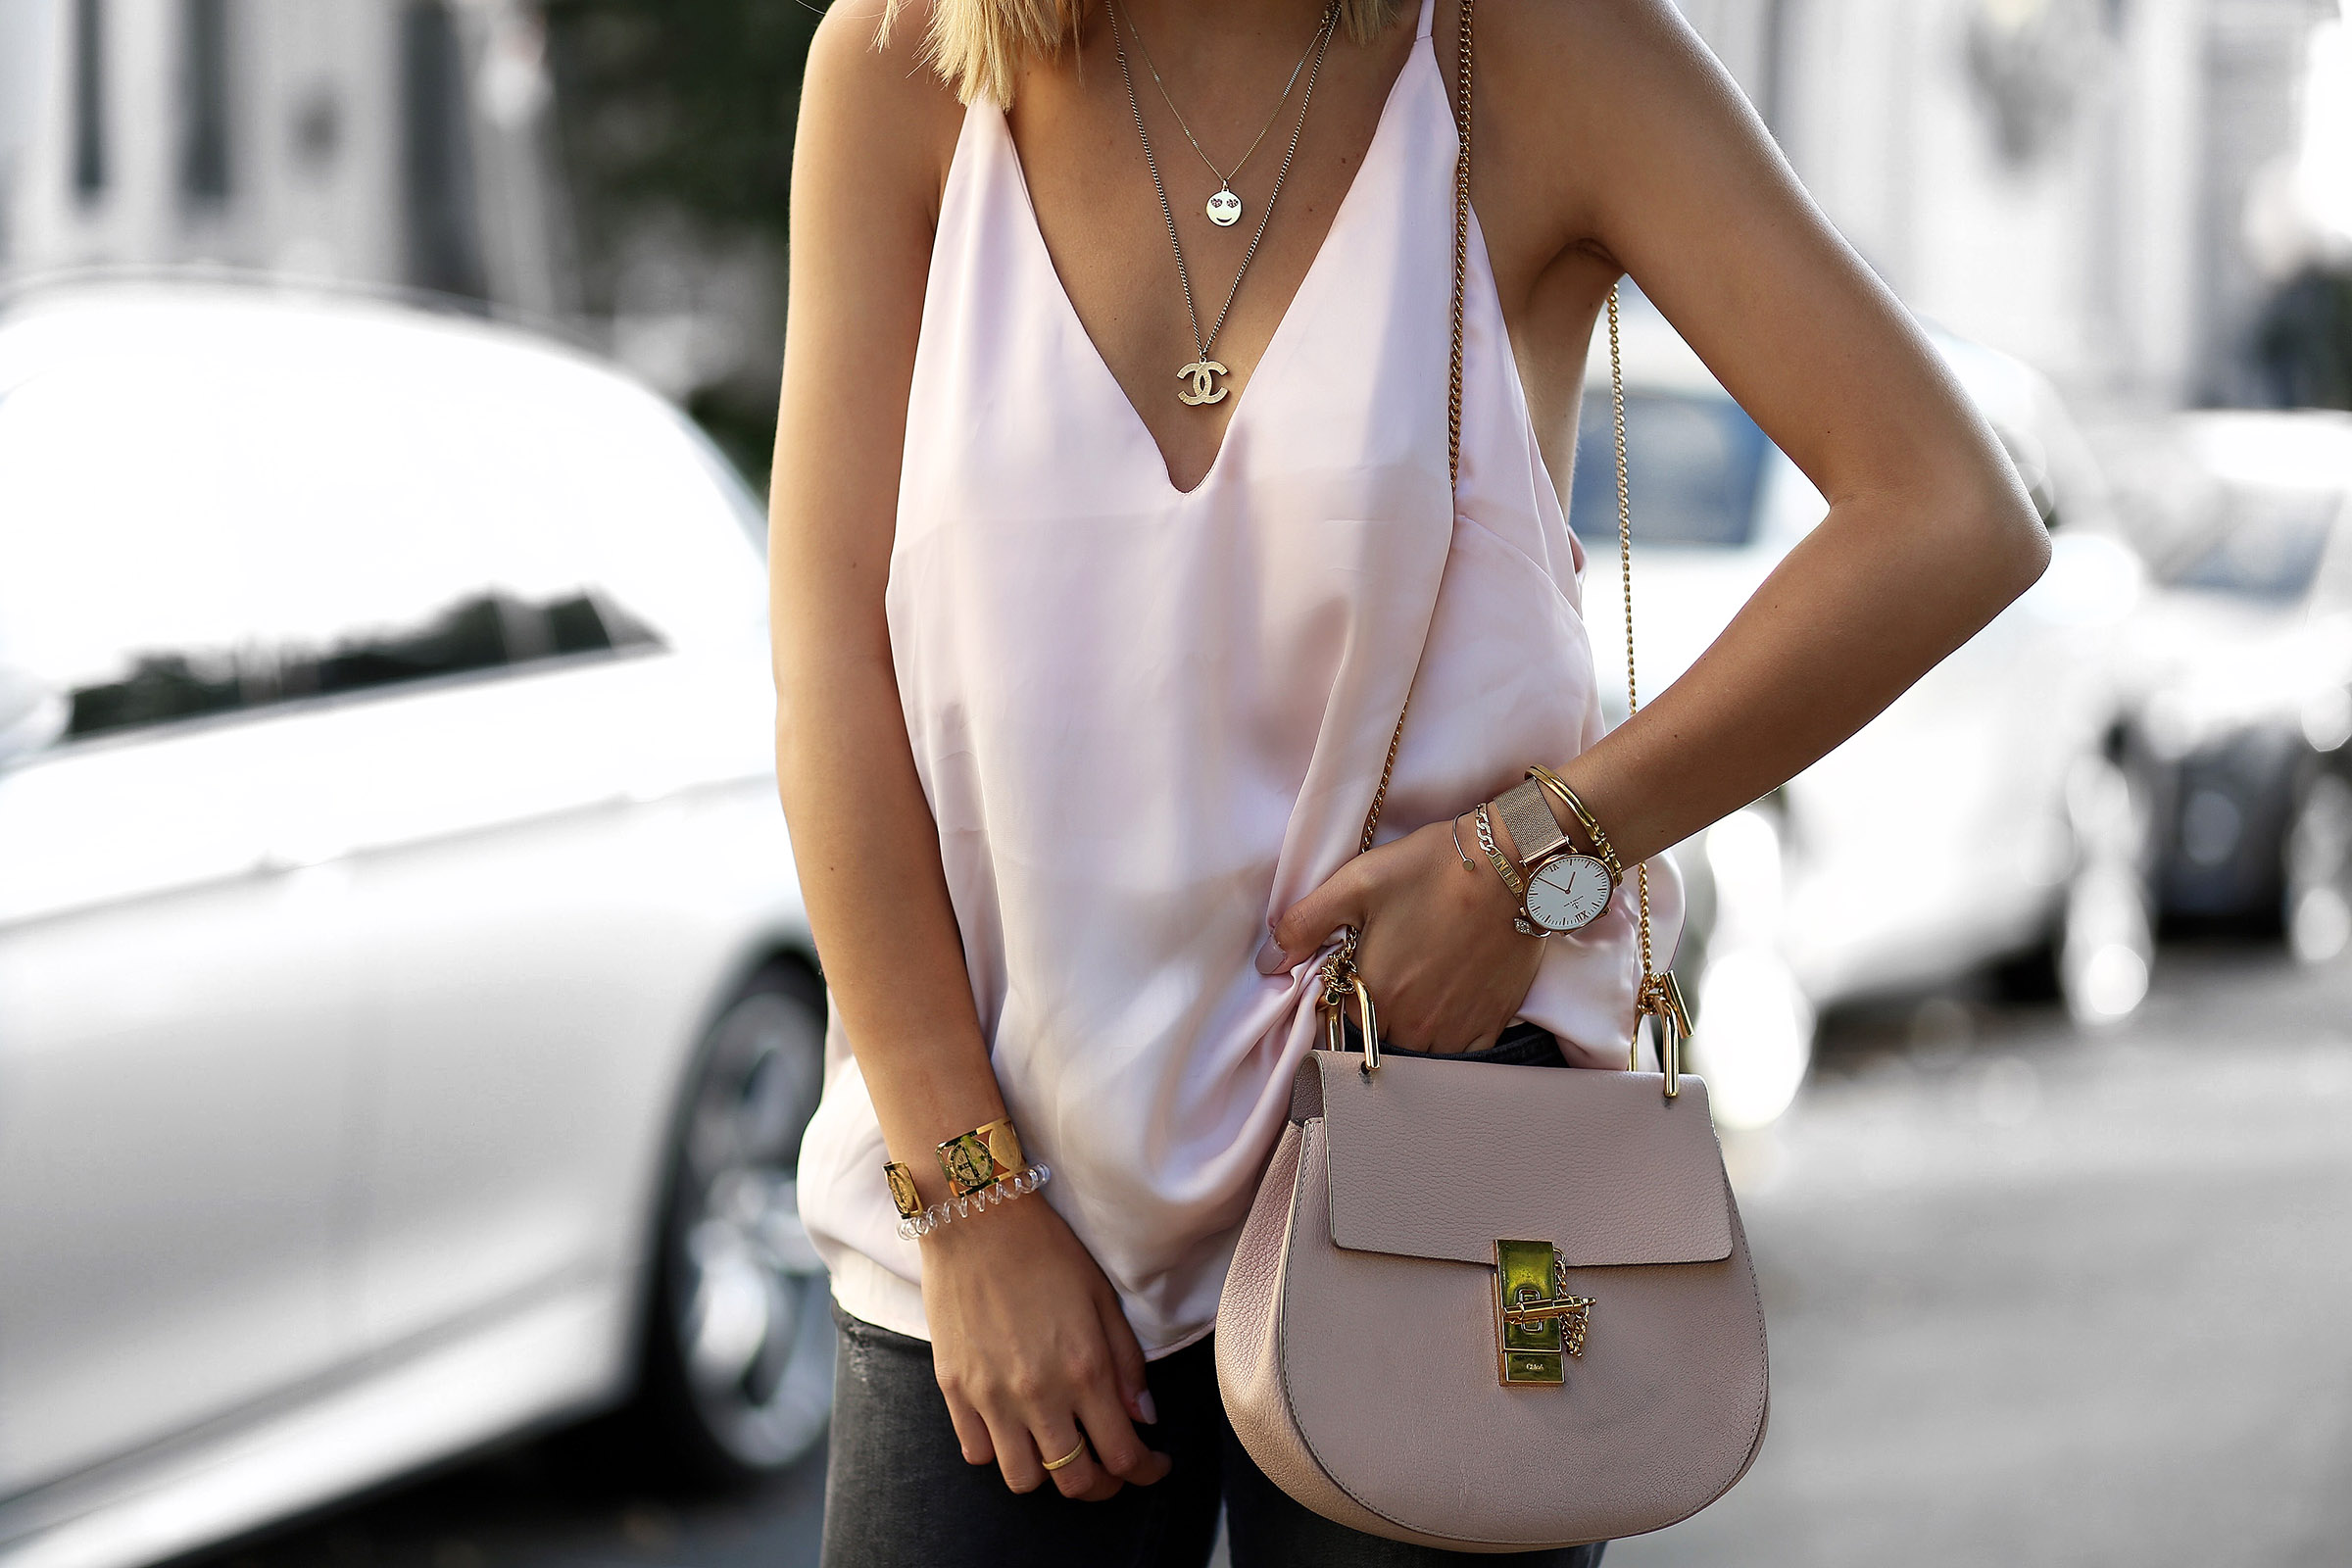 chloé-drew-bag-chanel-necklace